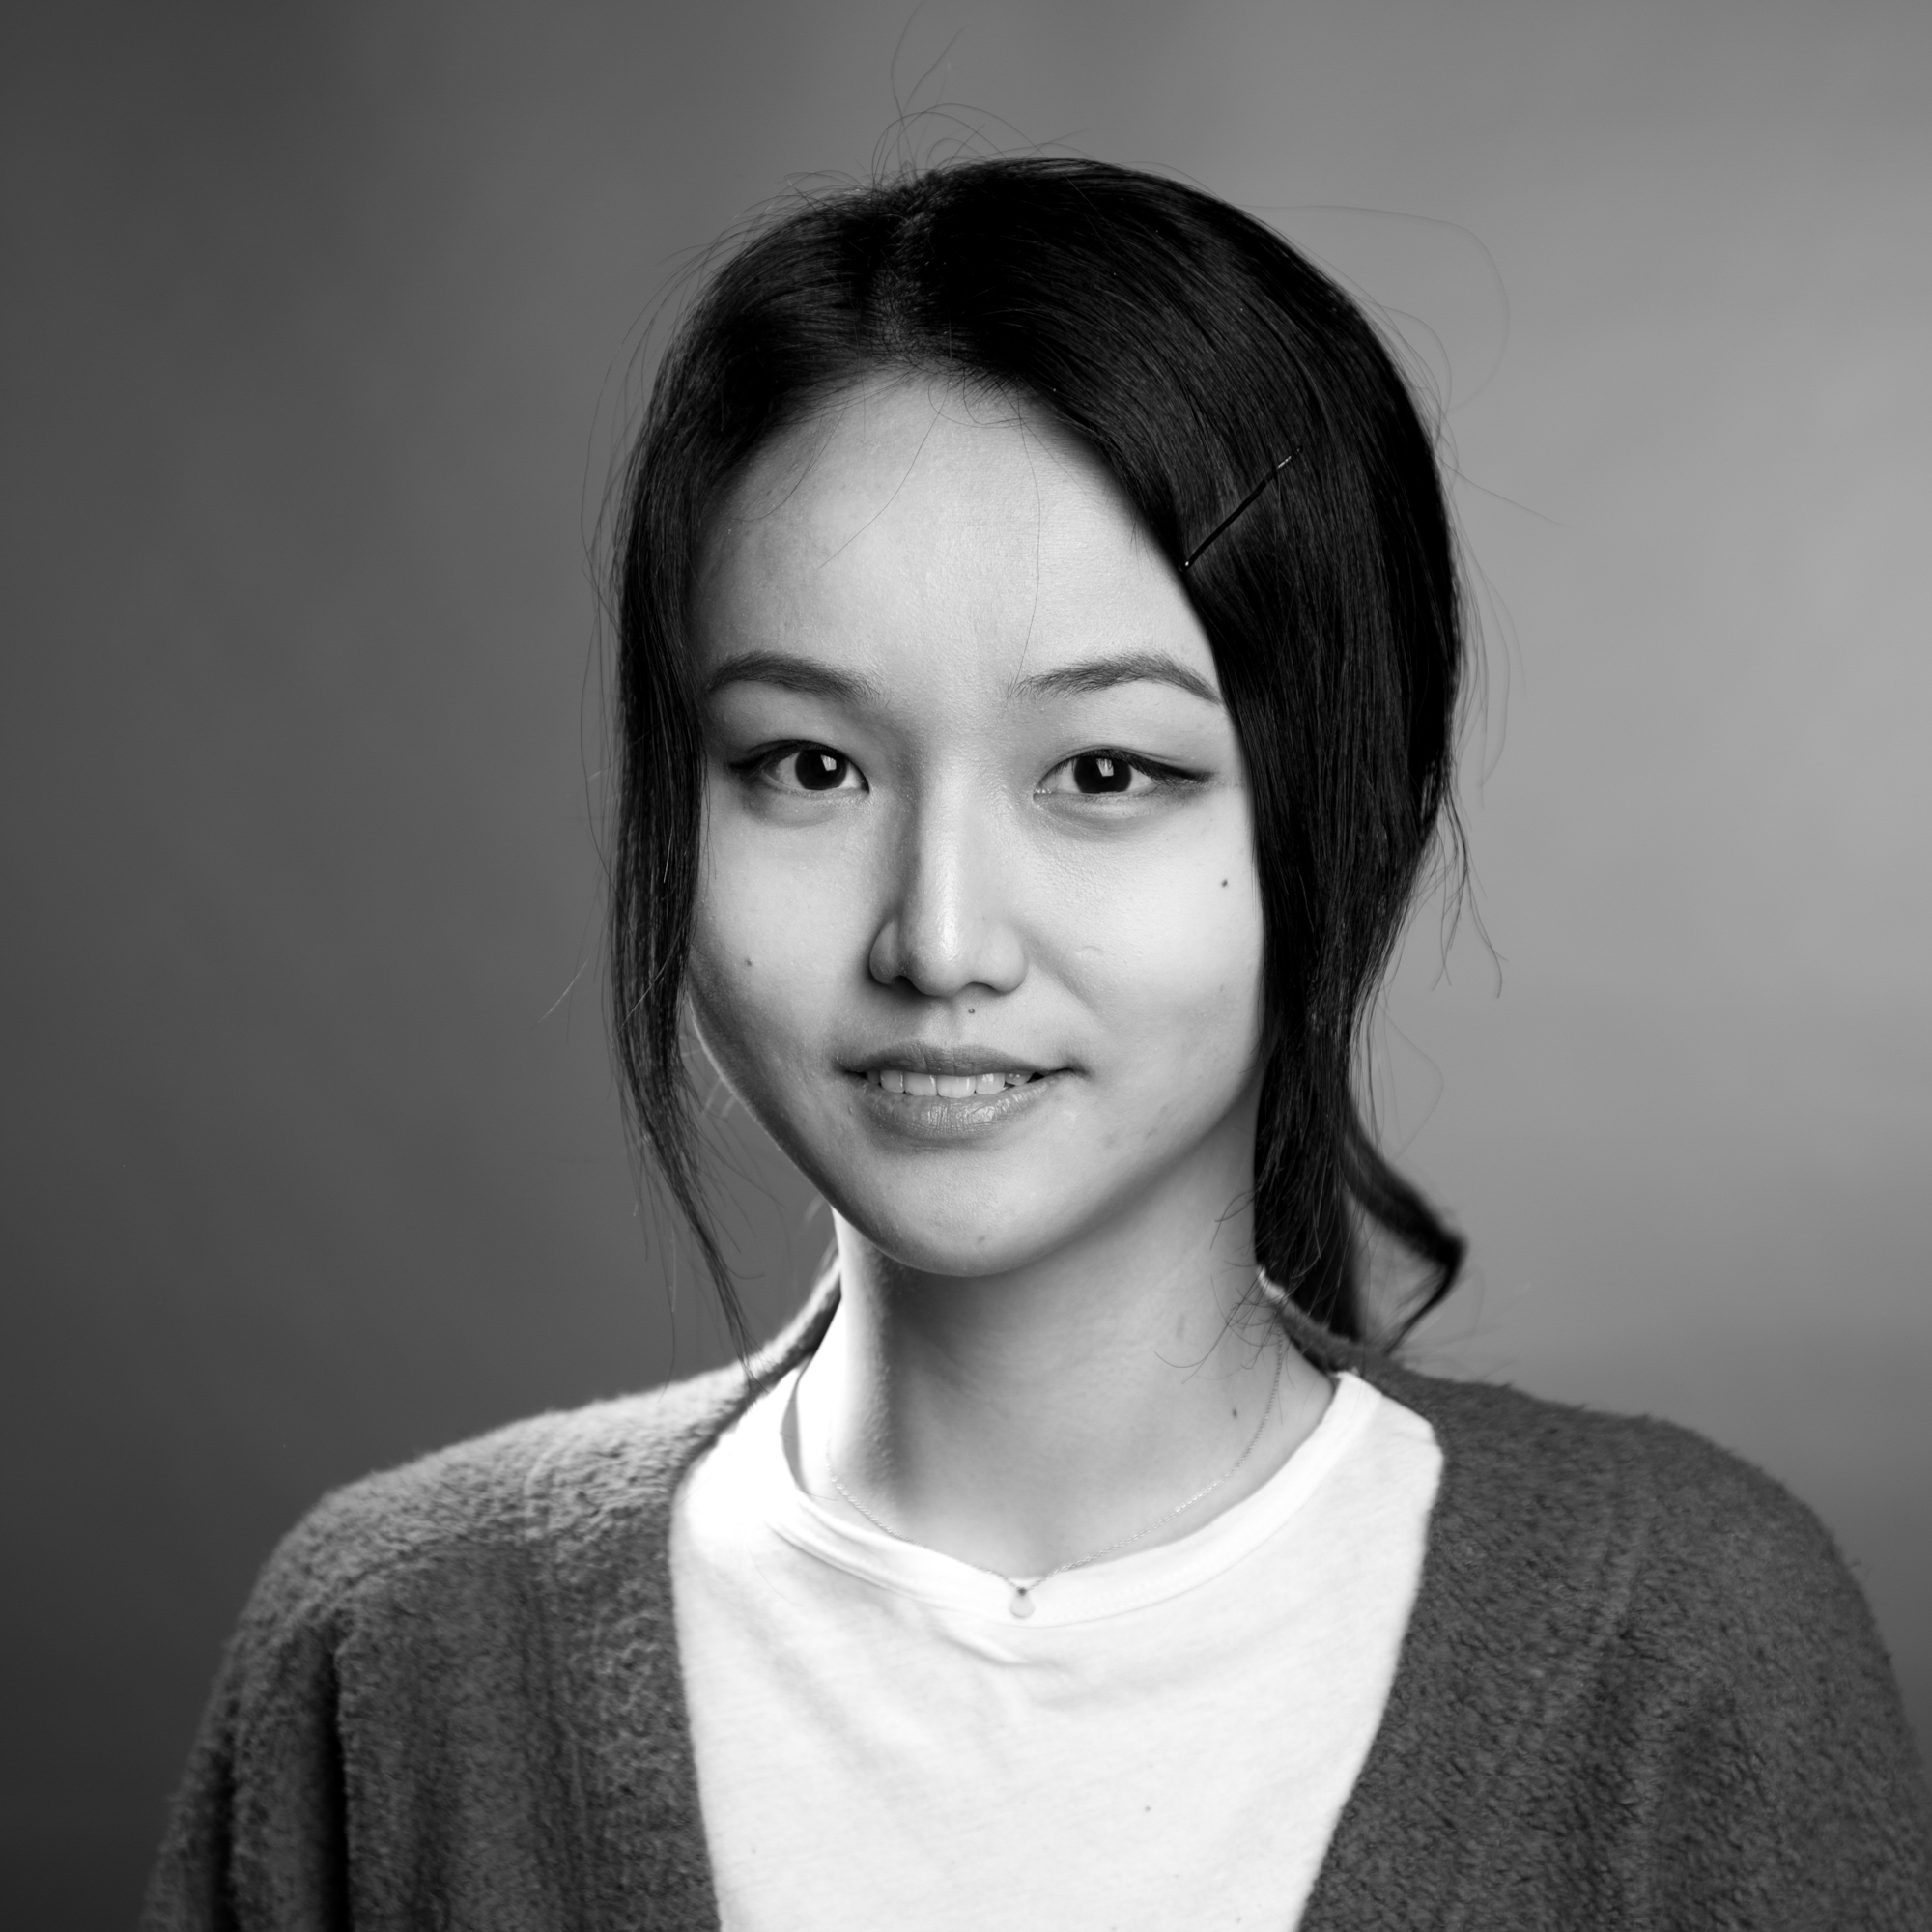 Creama Wang   Creama Wong is an industrial designer who loves to work with physical products to create enjoyable and meaningful interactions that bridge rationality and fantasy.  She values thoughtful, humorous, and functional simplicity, while aiming to create interactions that celebrate not only objects but a unique experience that bring objects to life.   www.creamawong.com   creamawhat@gmail.com